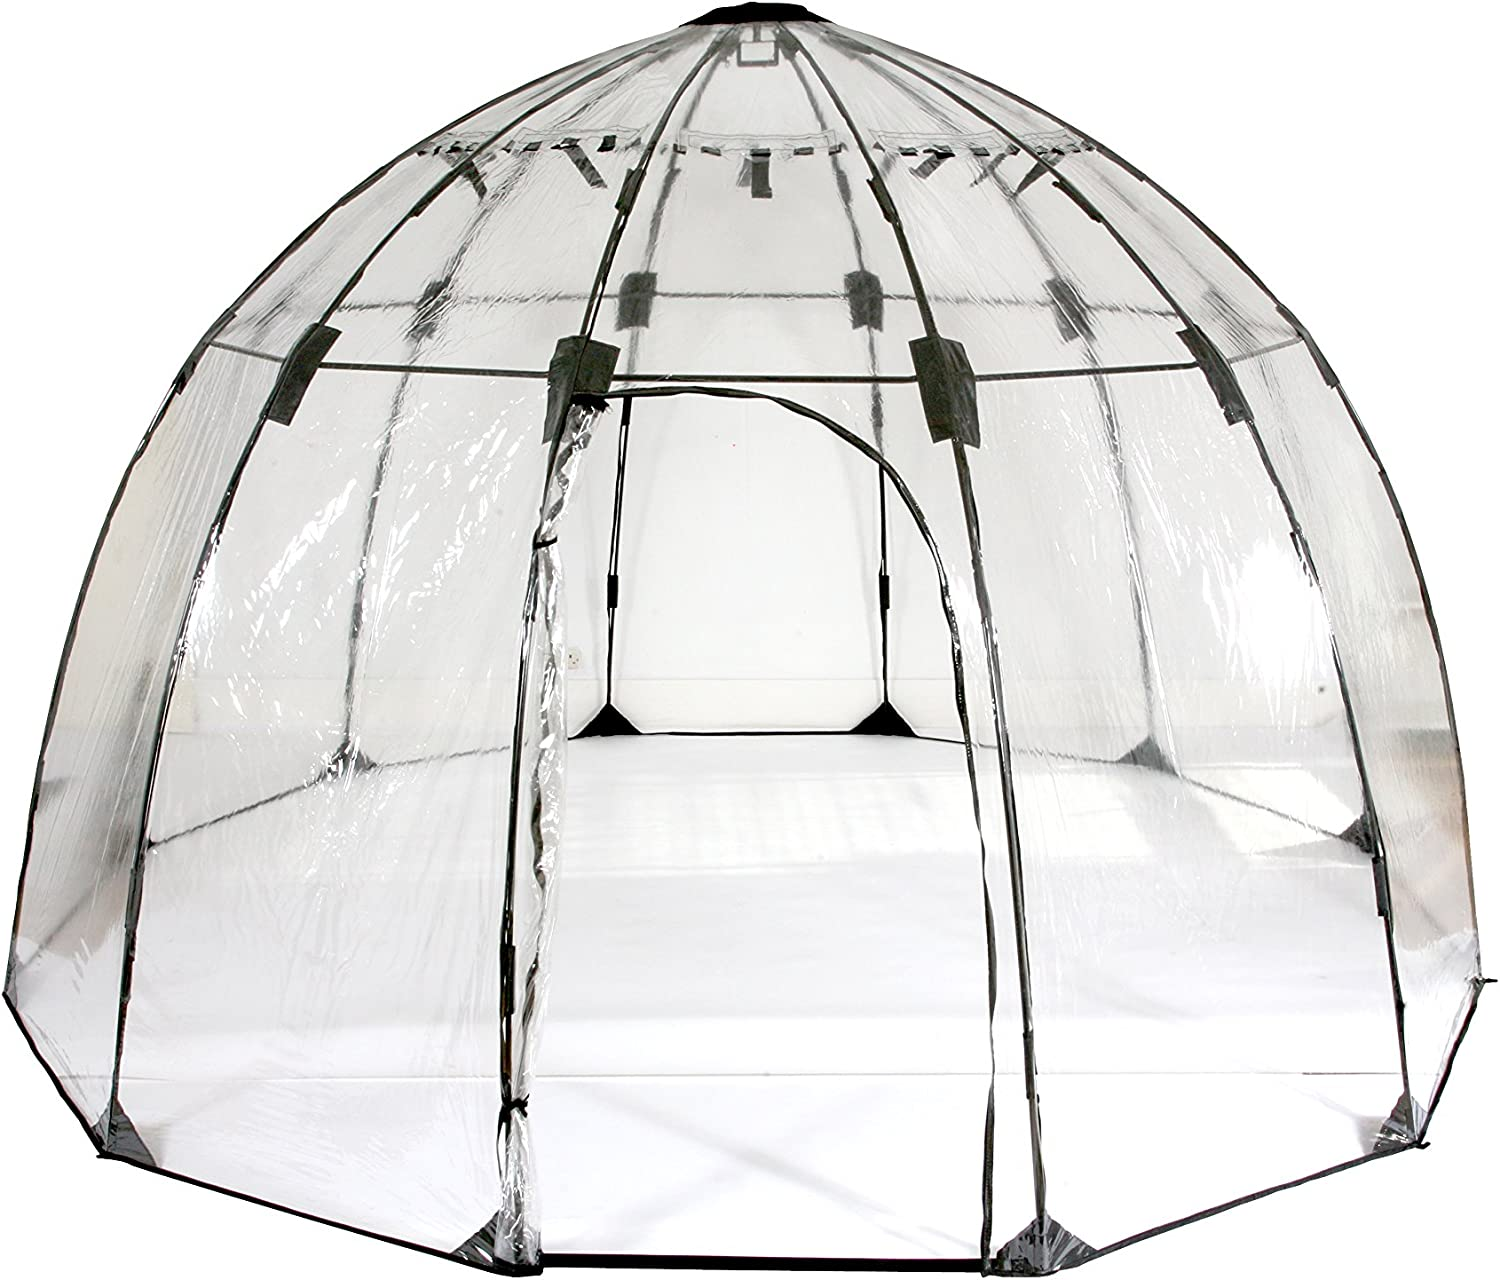 Tierra Garden 50-2510 Haxnicks Garden Sunbubble Greenhouse, Large